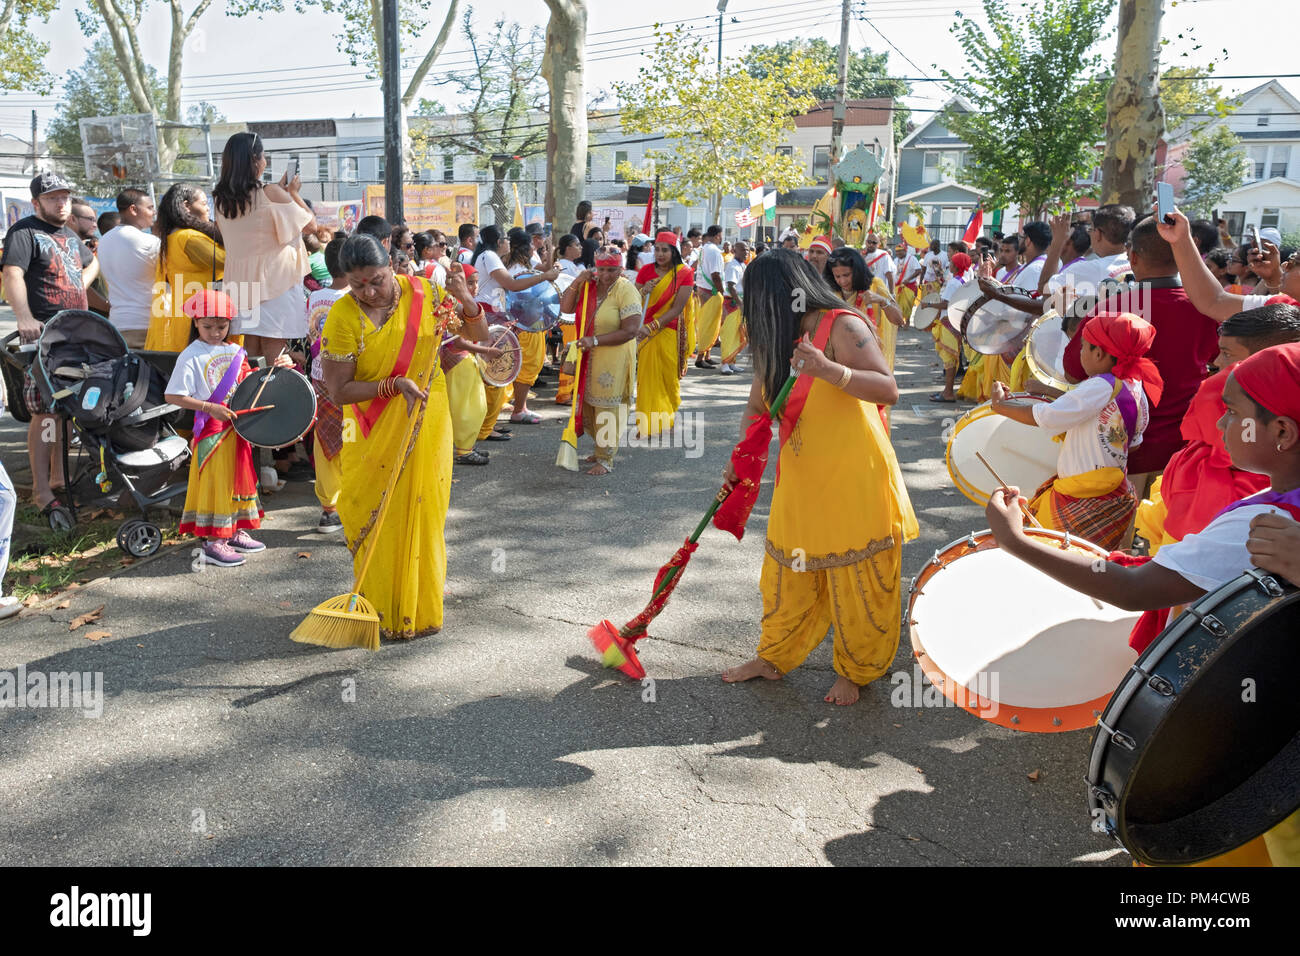 Devout Hindu women sweep a path where statues of deities will parade. In Smokey Park in South Richmond Hill, Queens, New York. - Stock Image